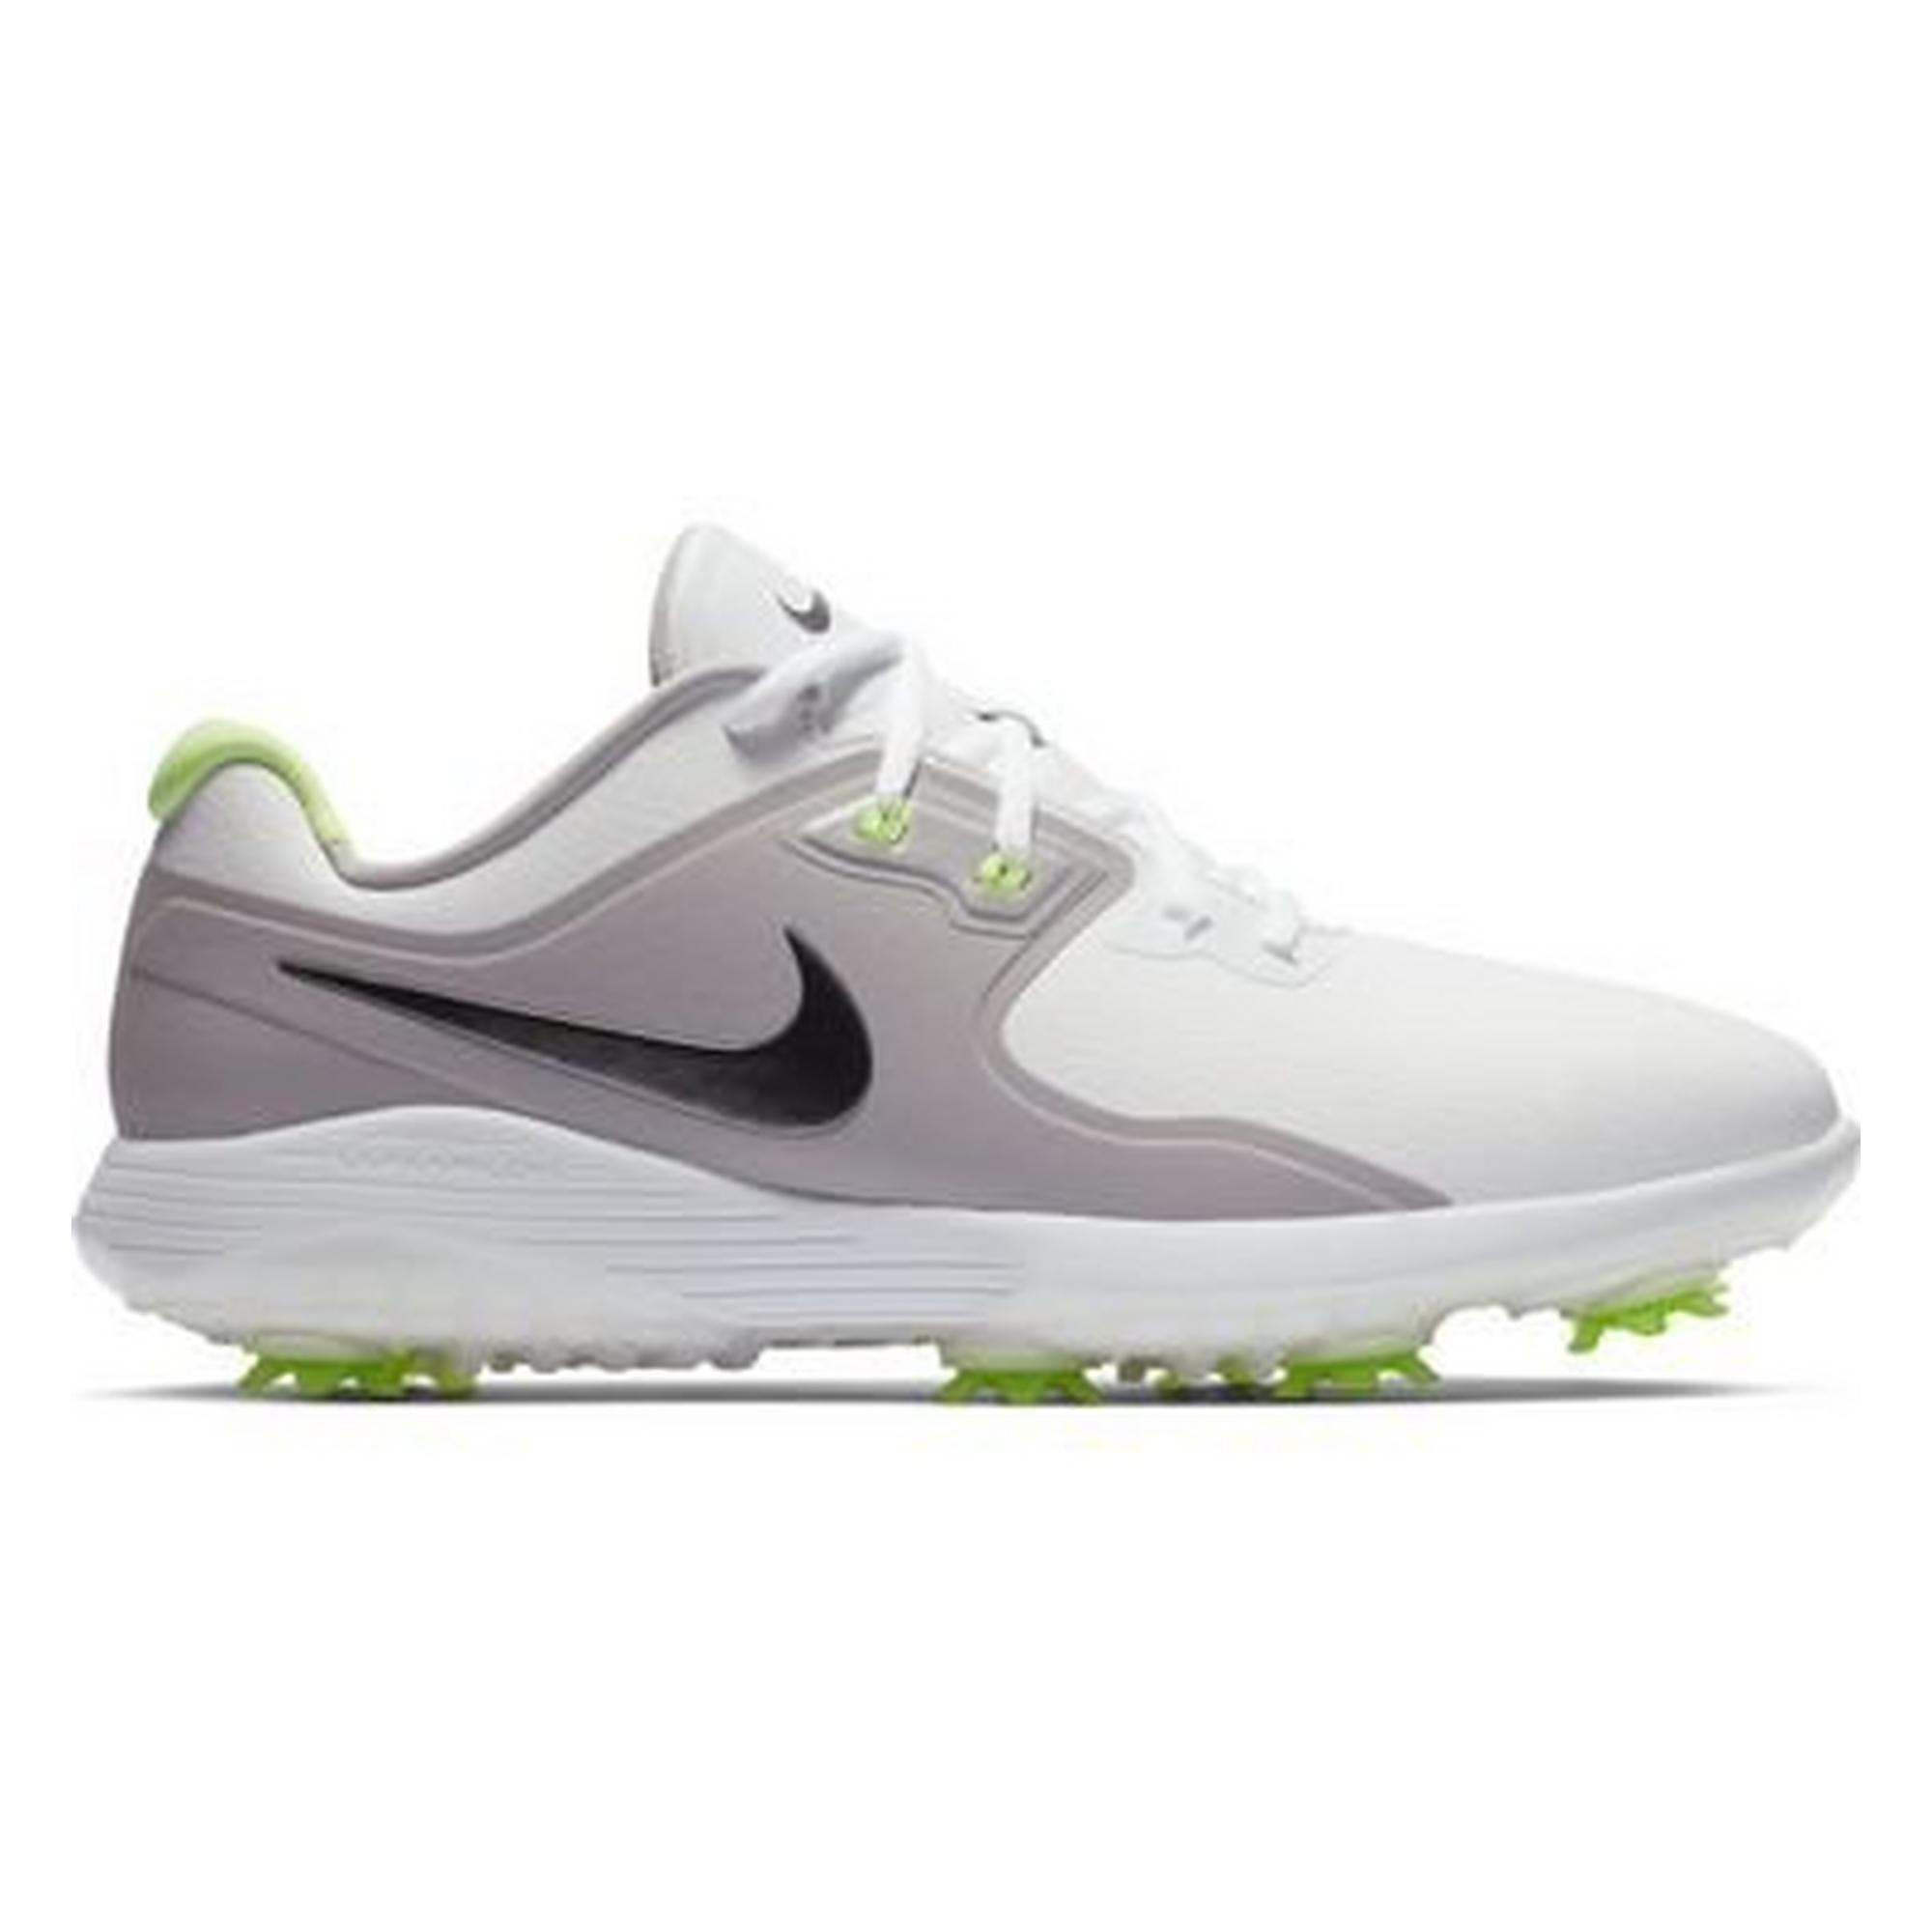 Men's Vapor Pro Spiked Golf Shoe - WHT/GRY/GREEN